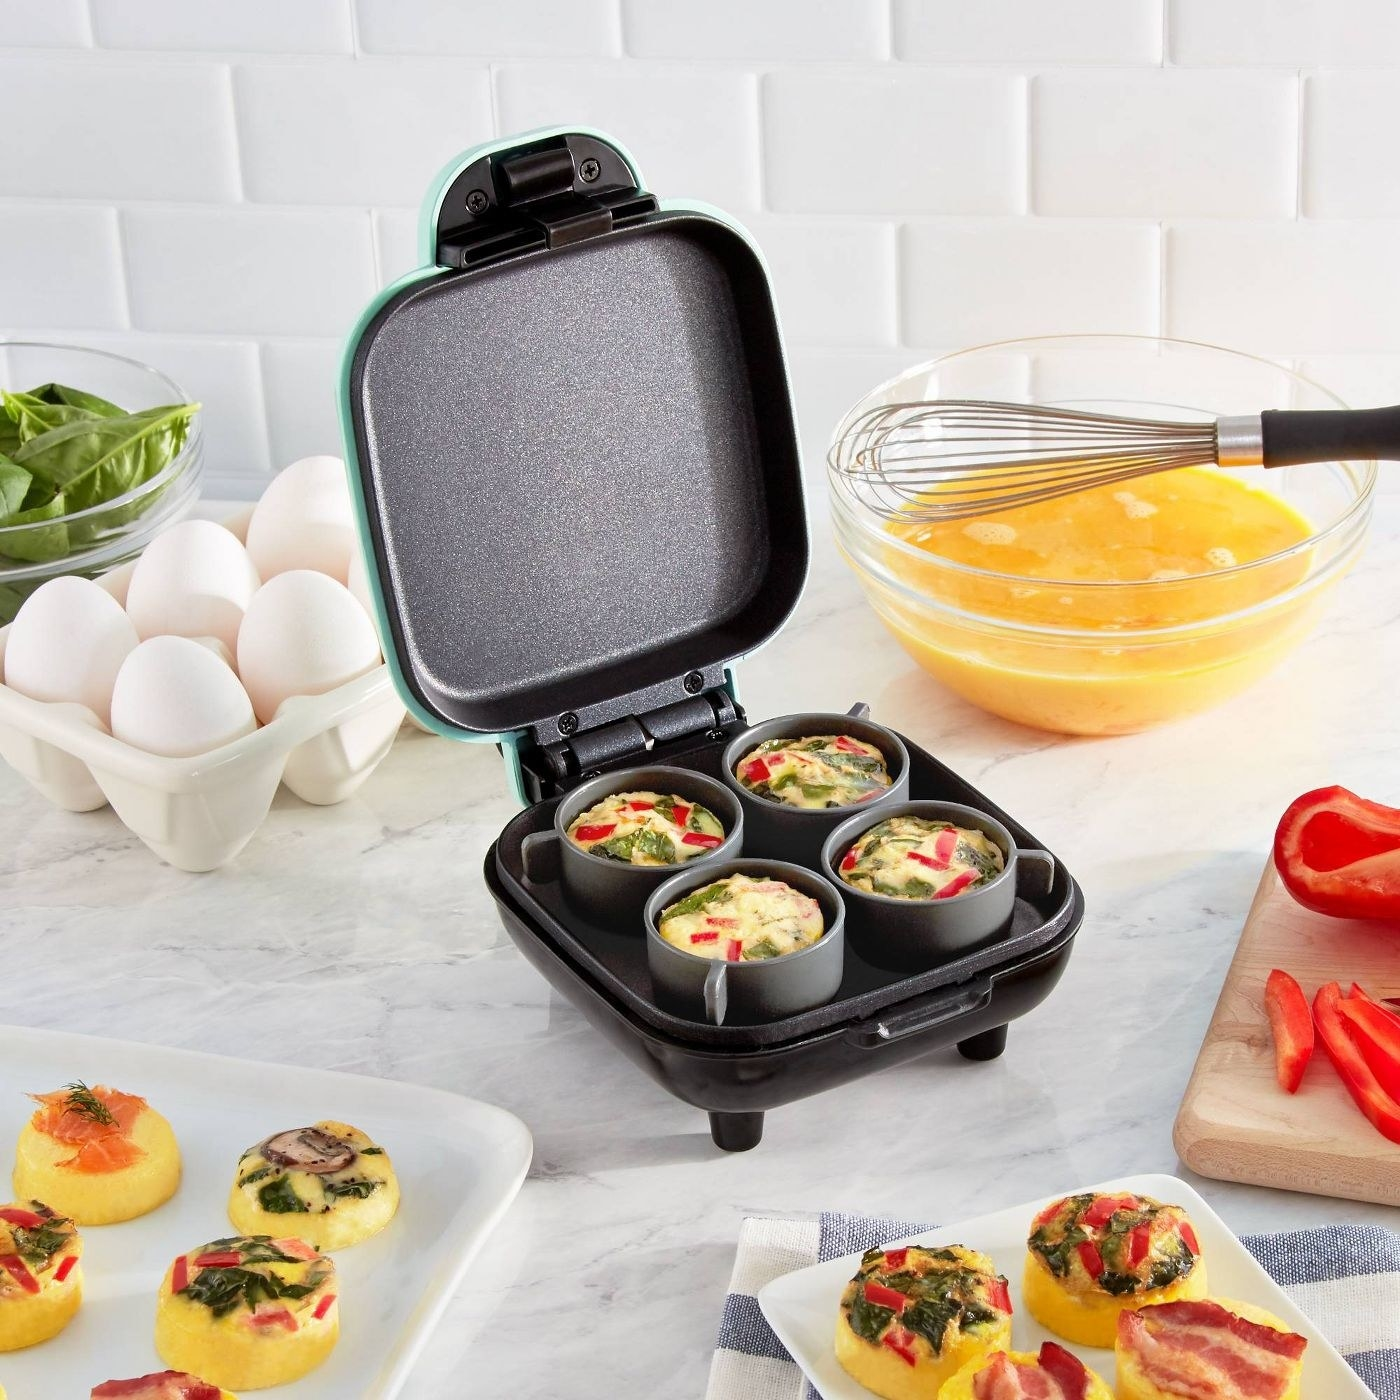 The mini egg maker with space to cook four eggs